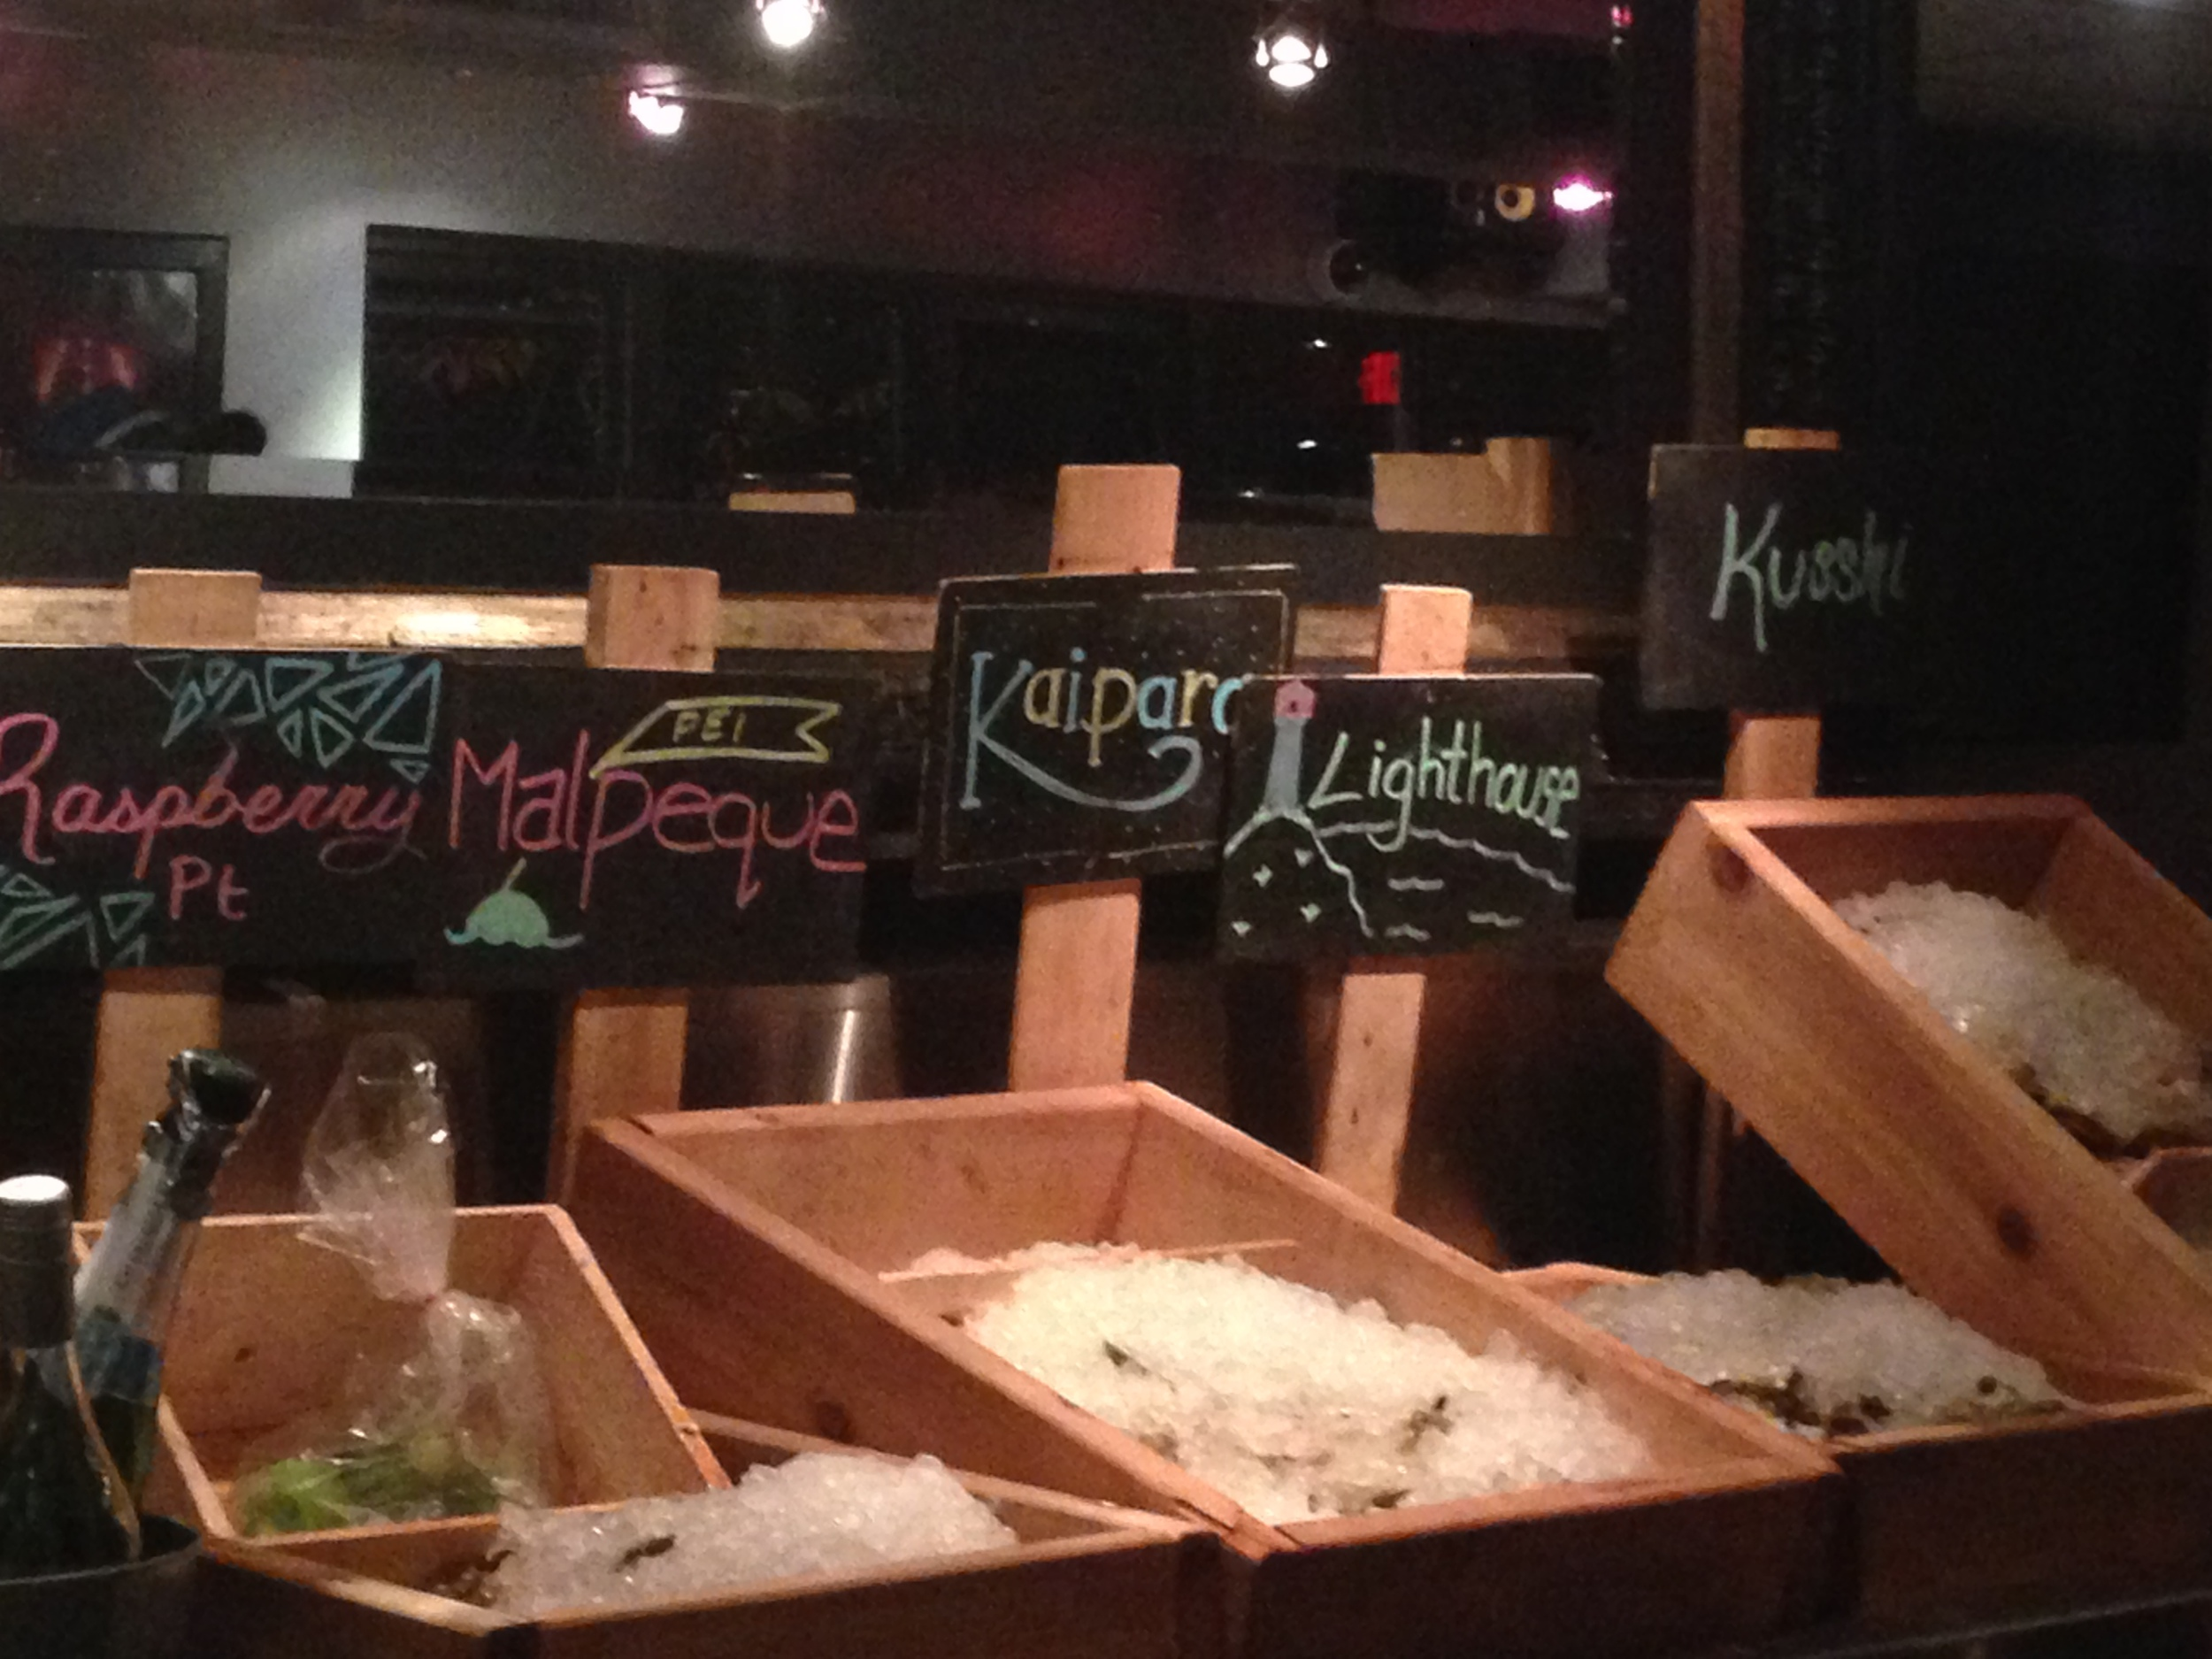 Kaipara Oysters from New Zealand on the podium at Chewies in Vancouver.